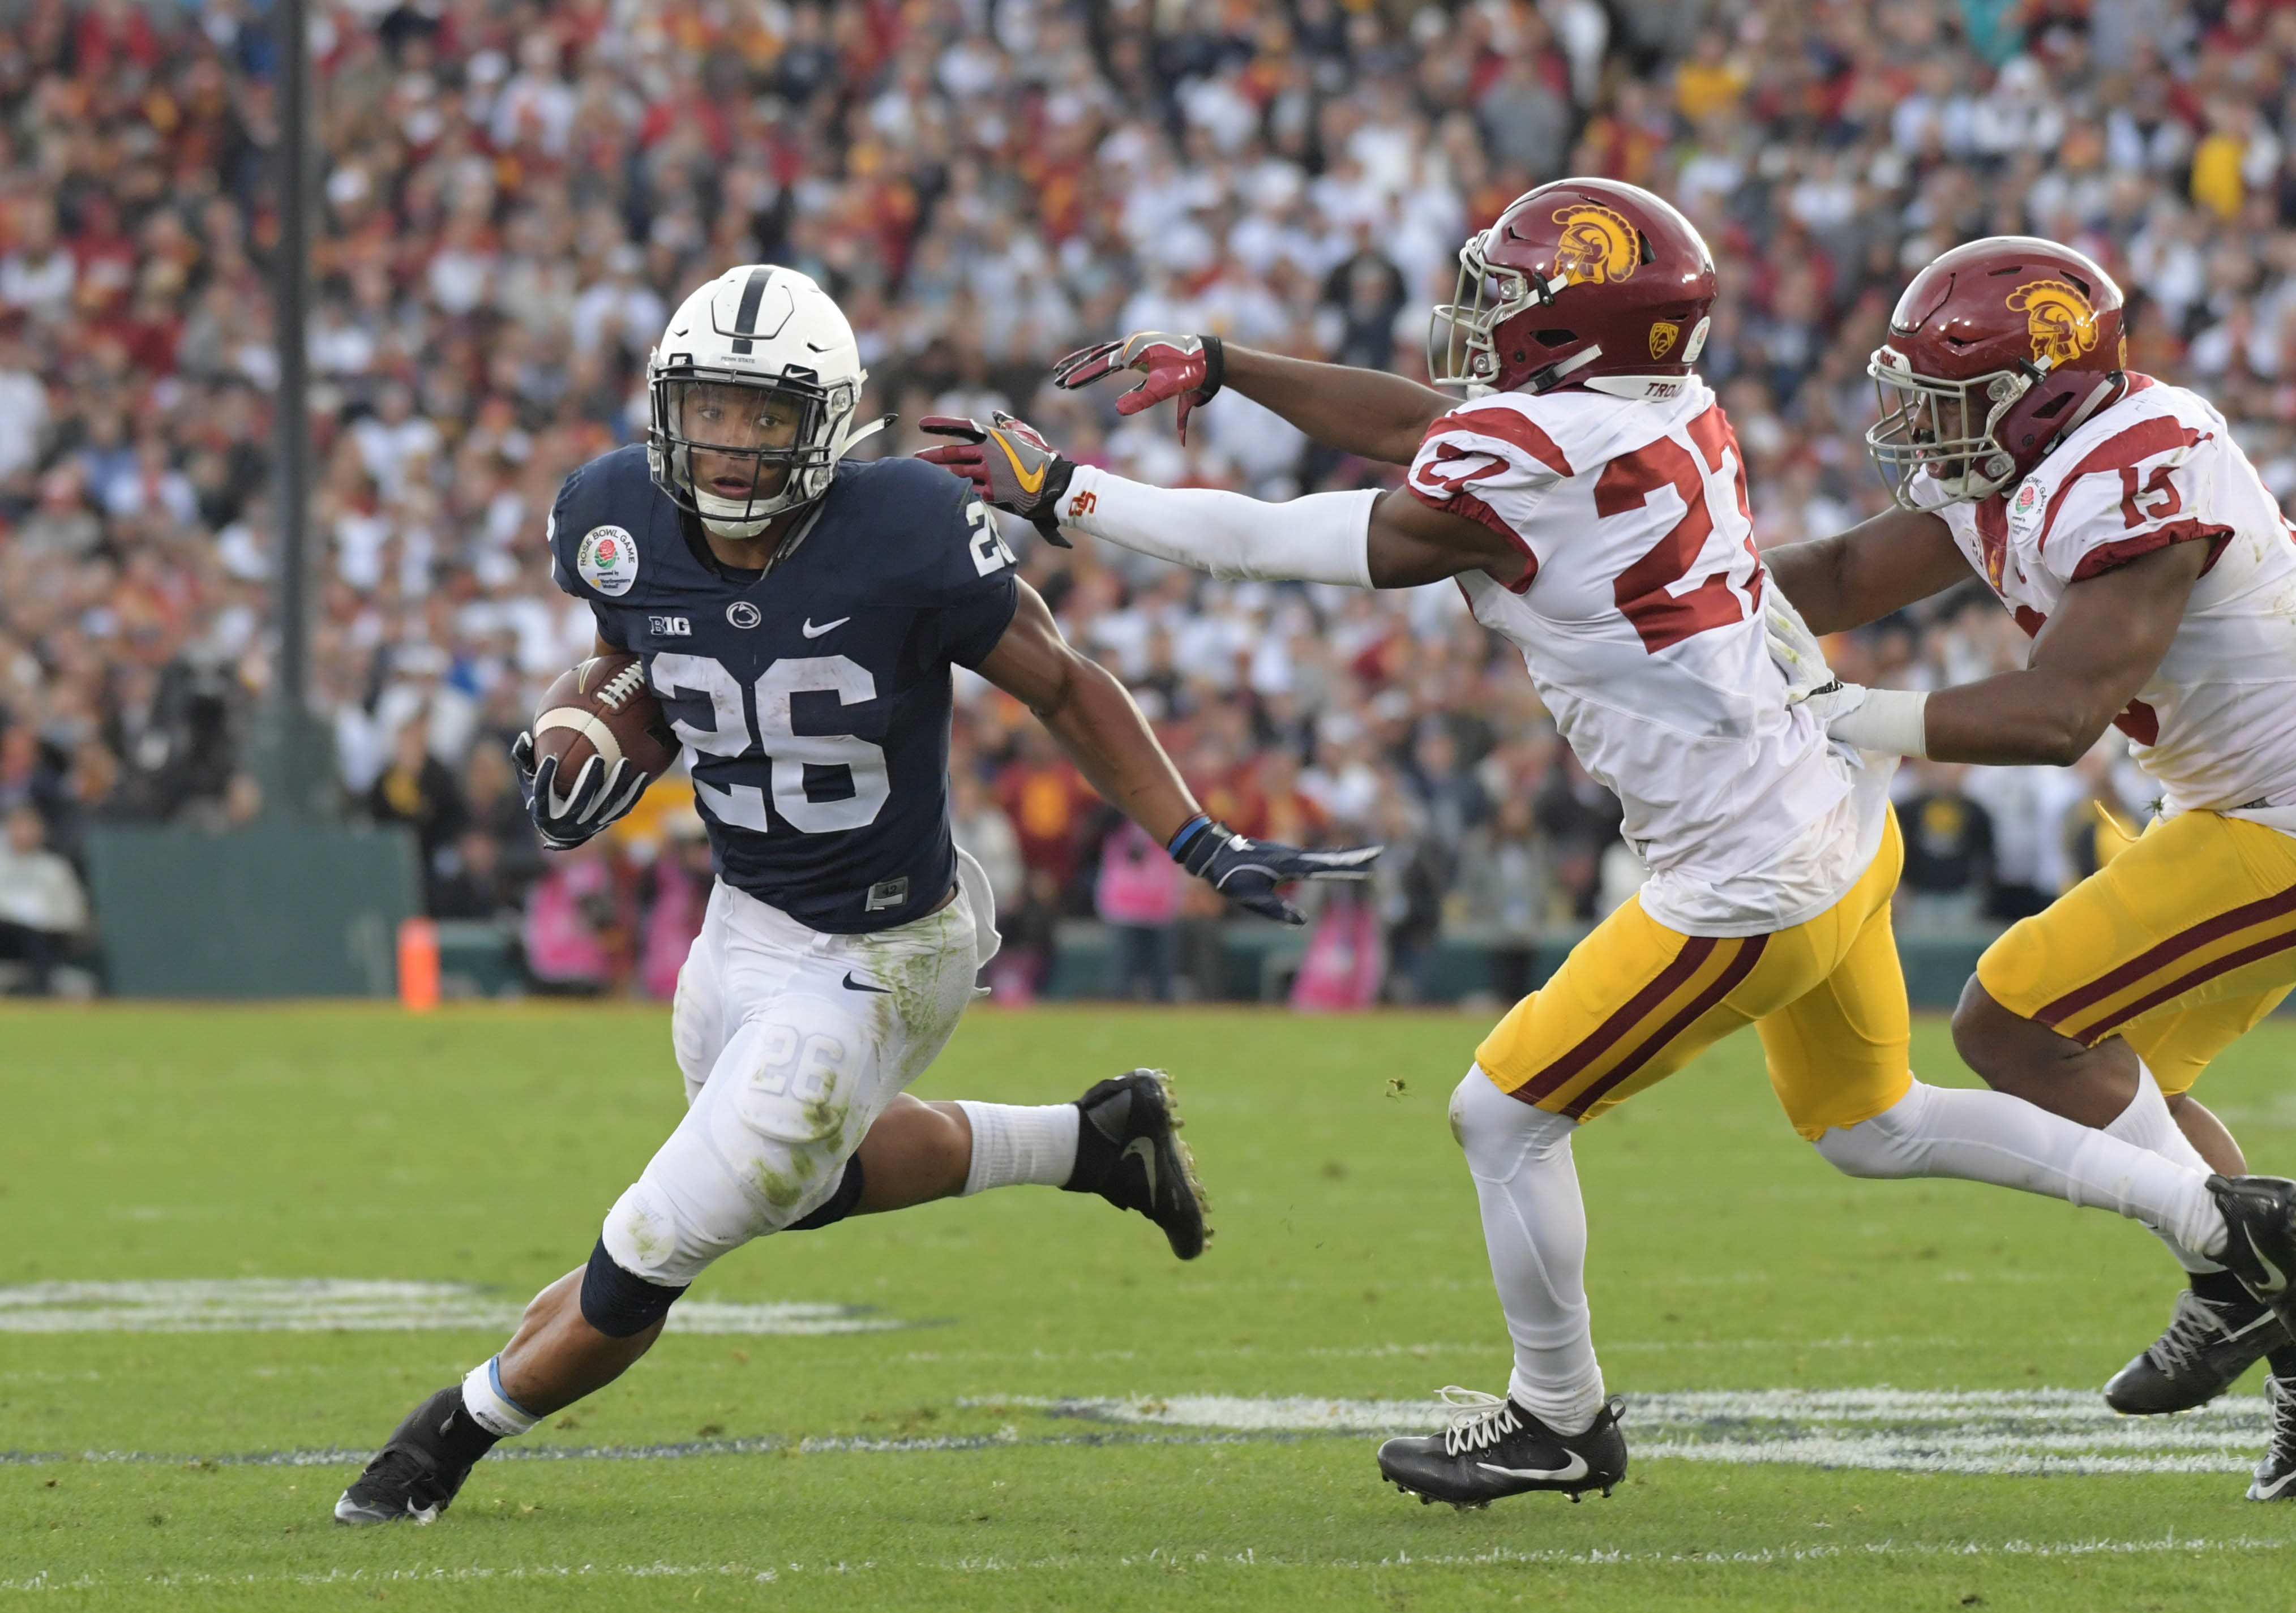 9801349-ncaa-football-rose-bowl-game-penn-state-vs-southern-california